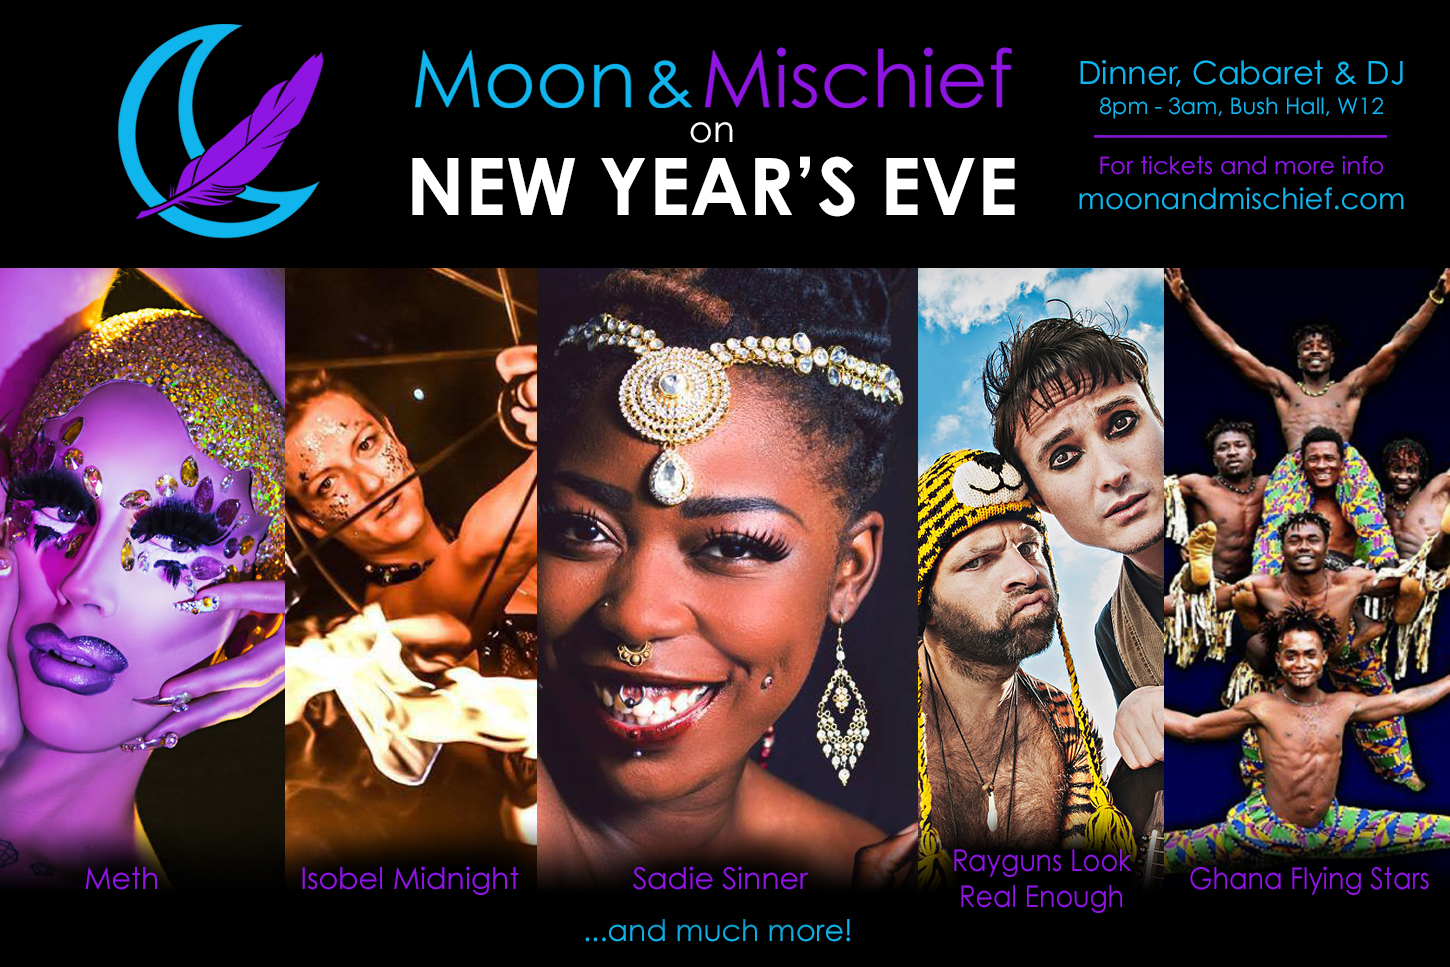 Moon and Mischief NYE web flyer1amended.jpg